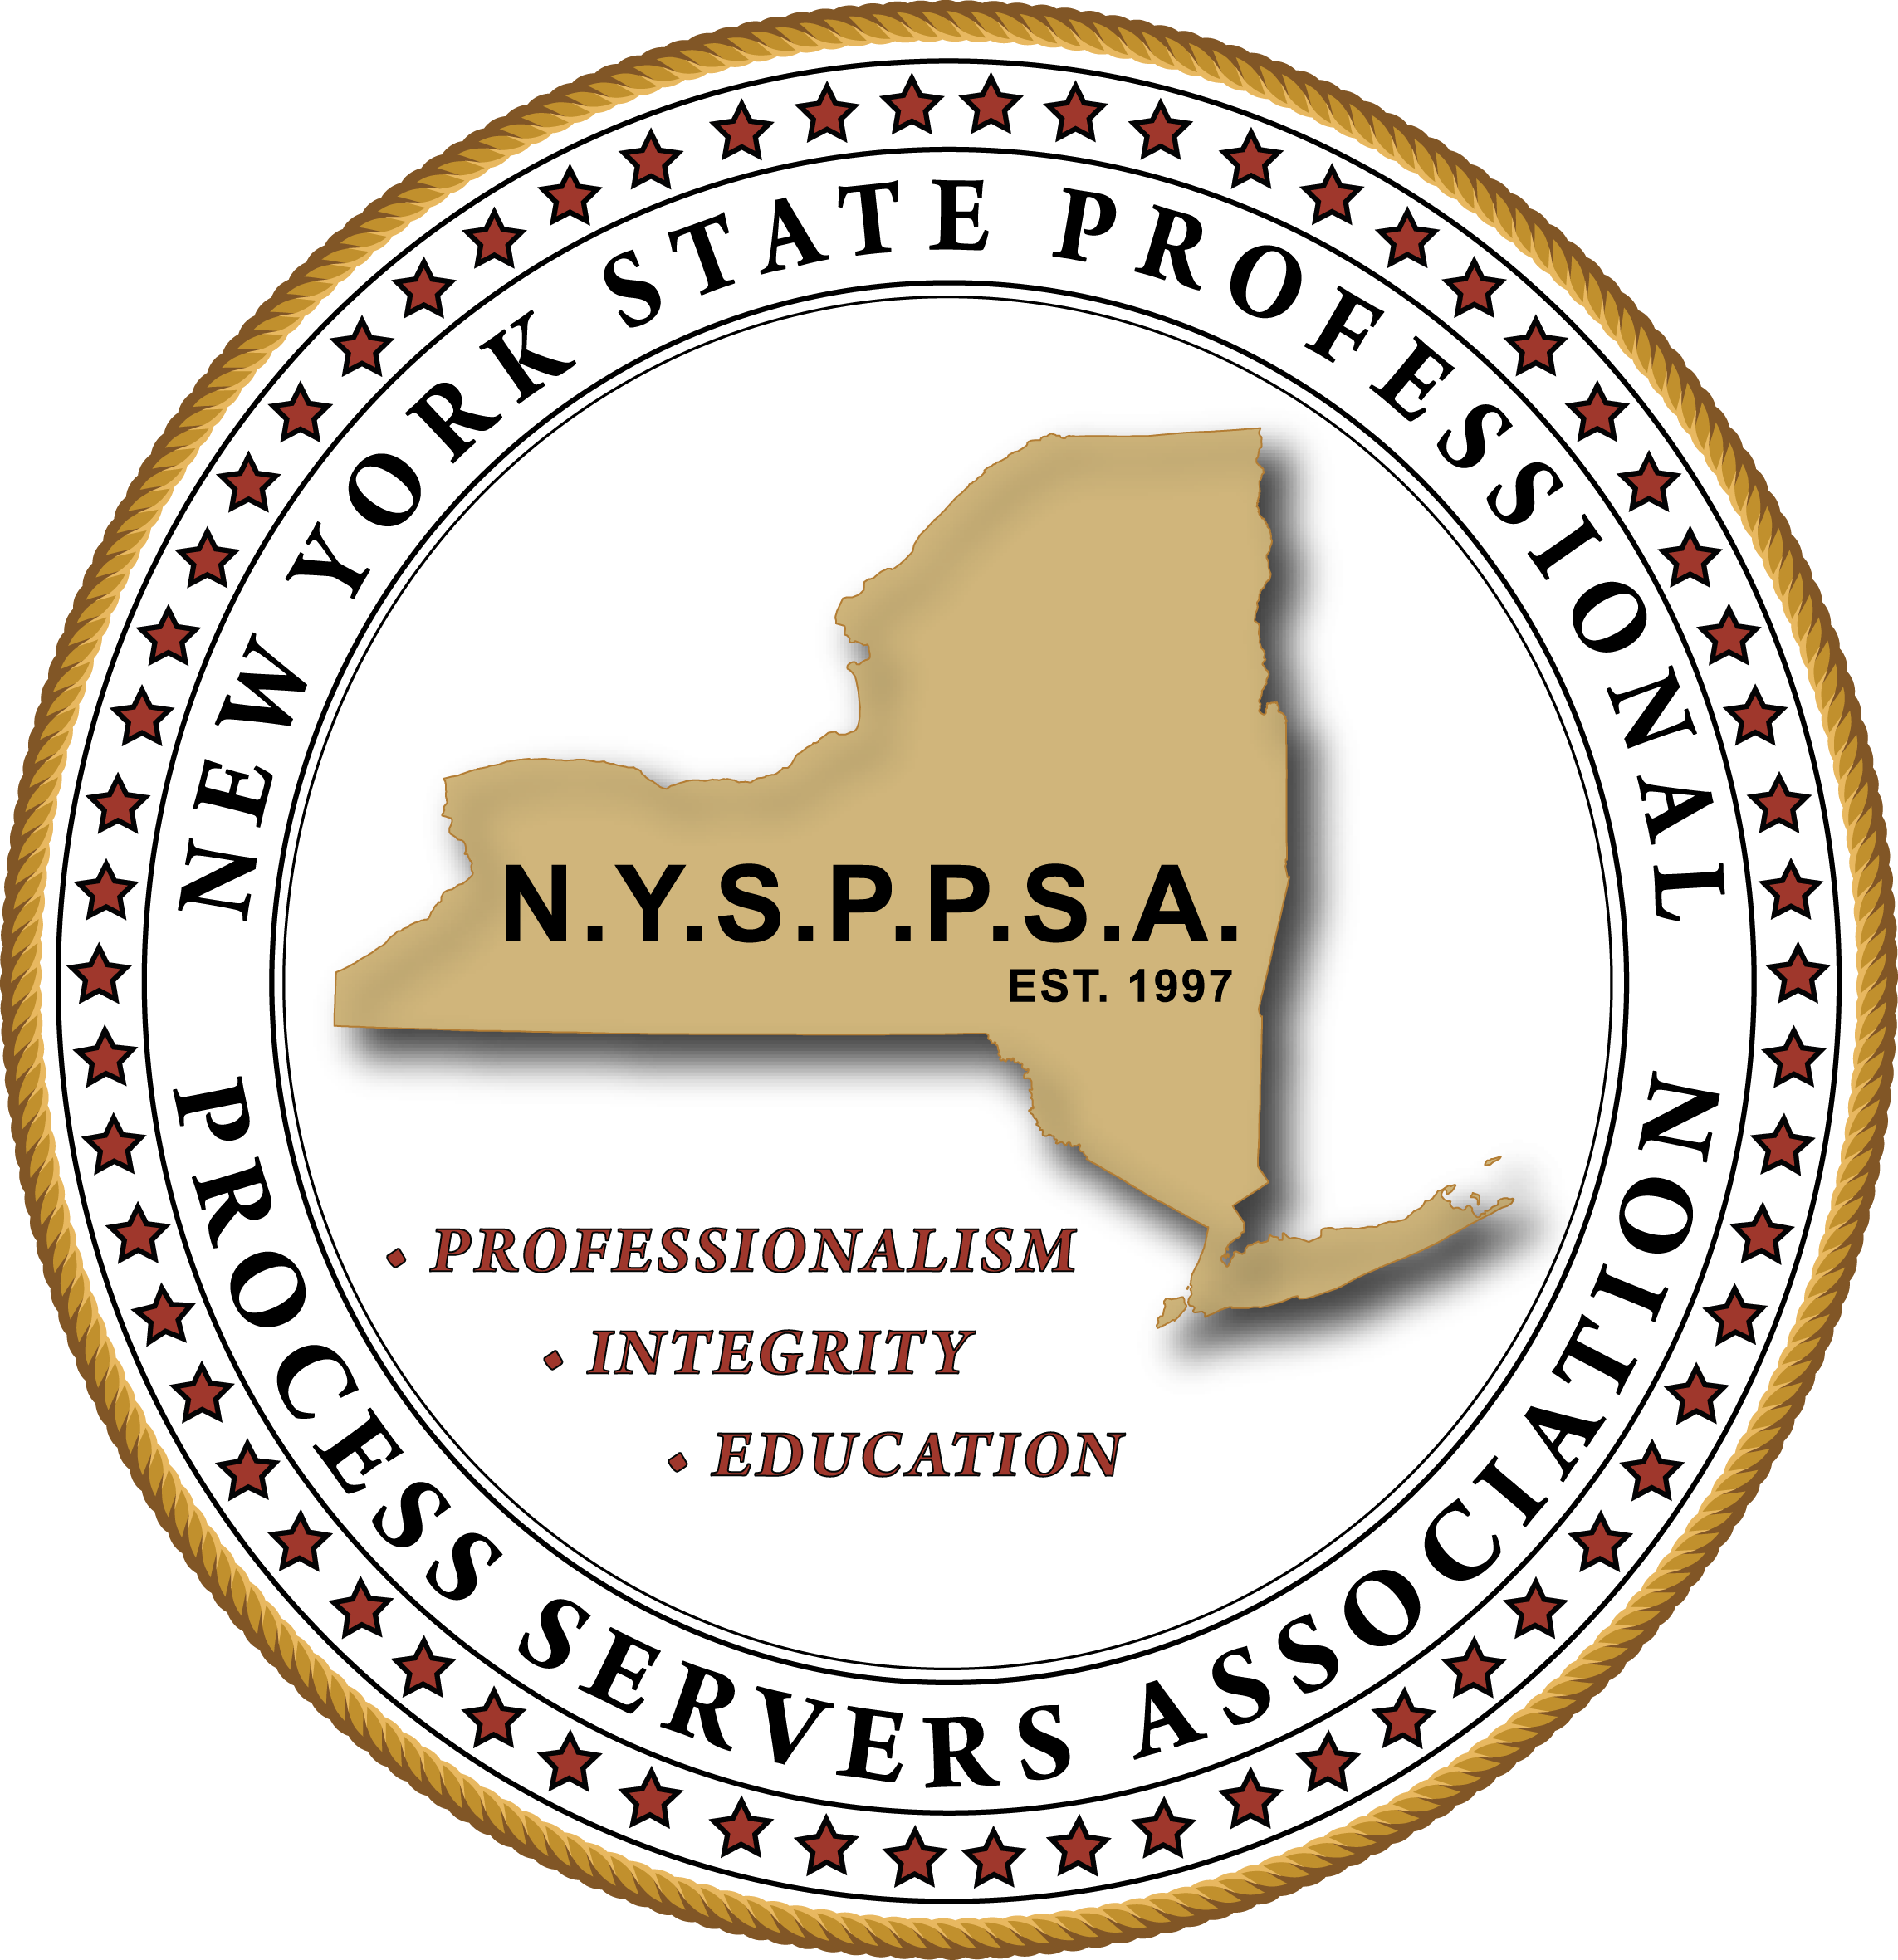 NYSPPSA LOGO CS (OUTLINES) 1-13-10.png